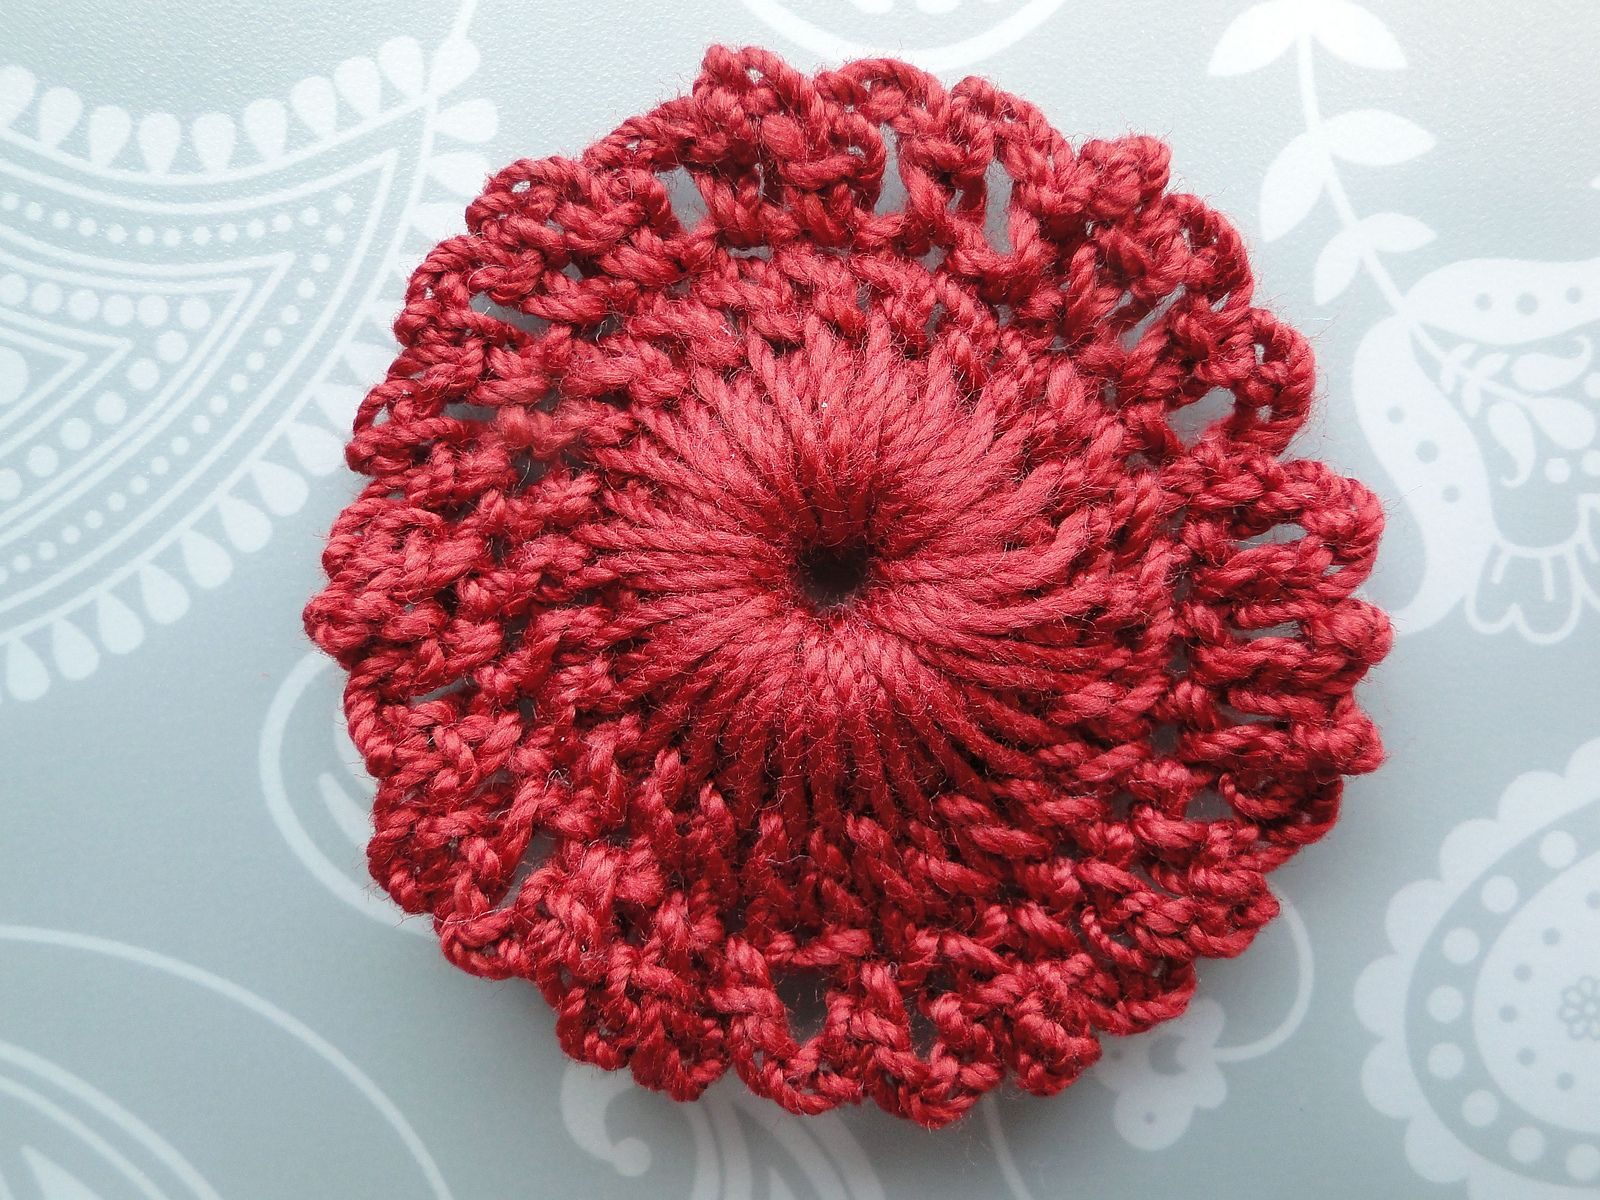 Bloom lace flower motif by claire from crochet leaf free crochet bloom lace flower motif by claire from crochet leaf free crochet pattern ravelry bankloansurffo Image collections